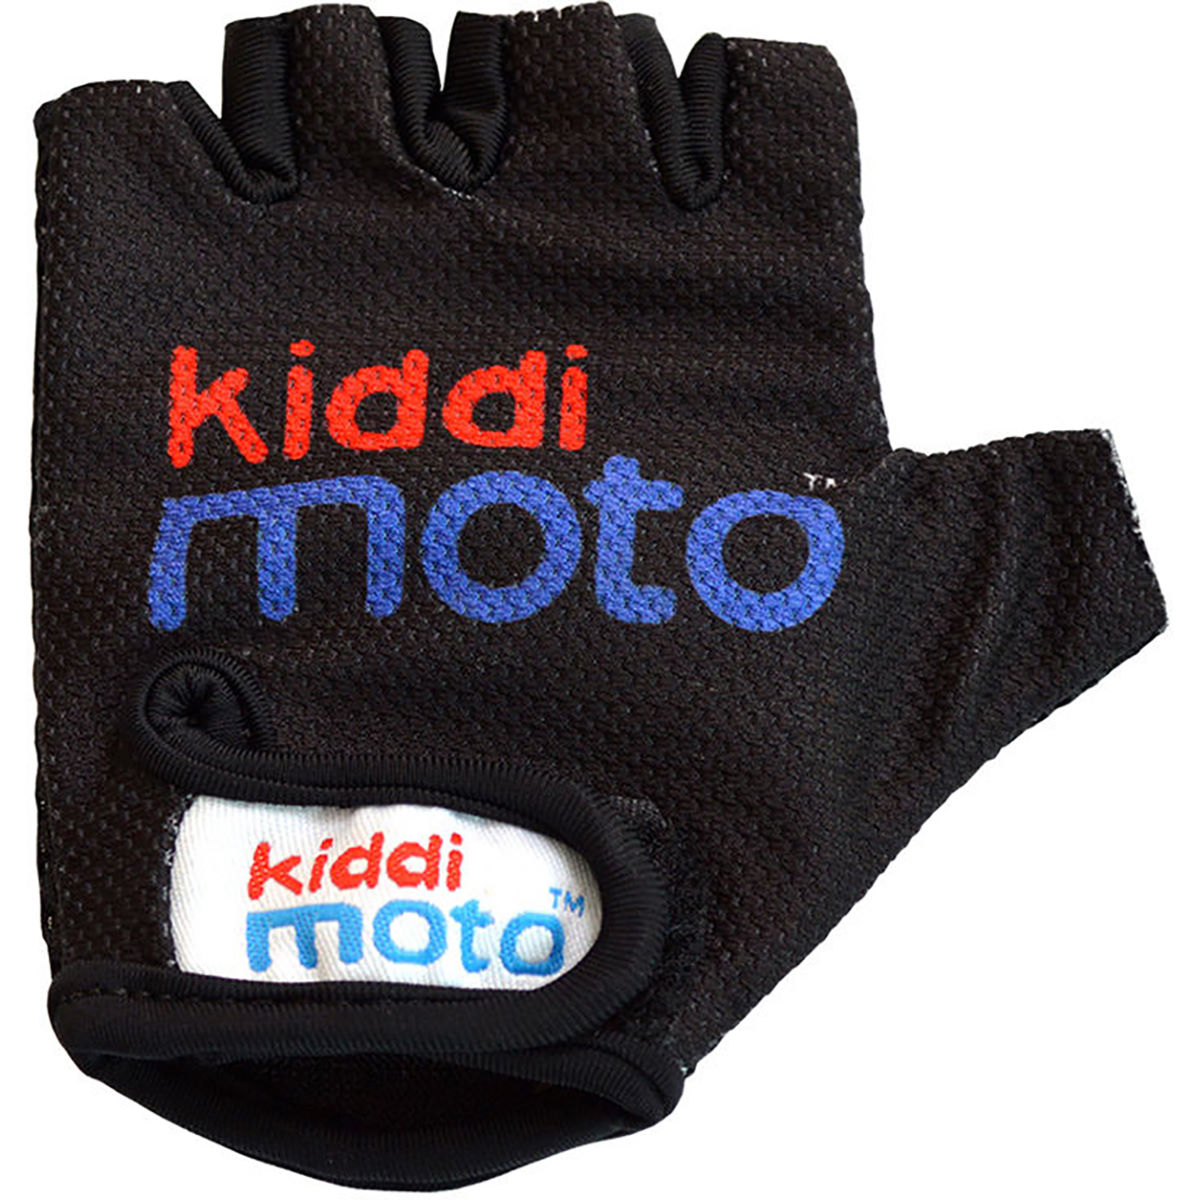 Kiddimoto Black Gloves - Guantes cortos